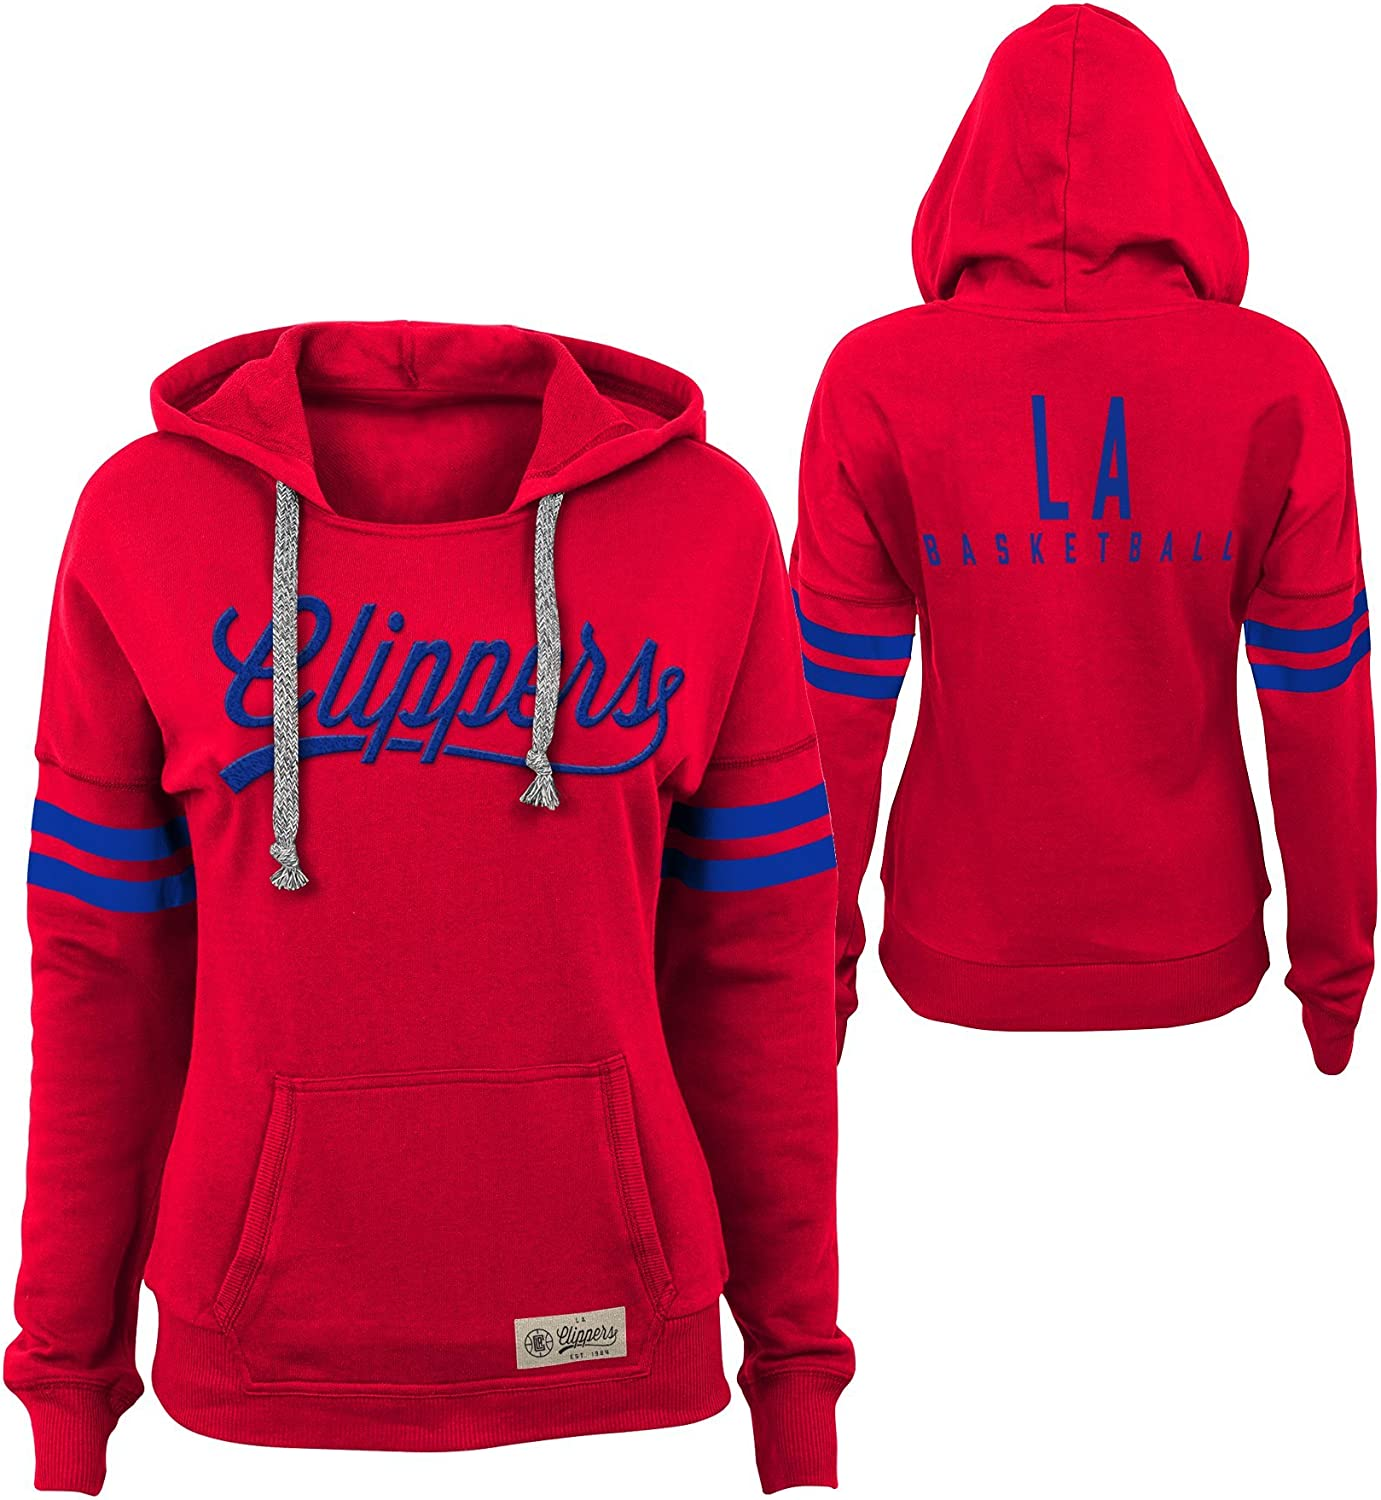 Outerstuff NBA Juniors Nba Junior Girls Varsity Pullover Hoodie